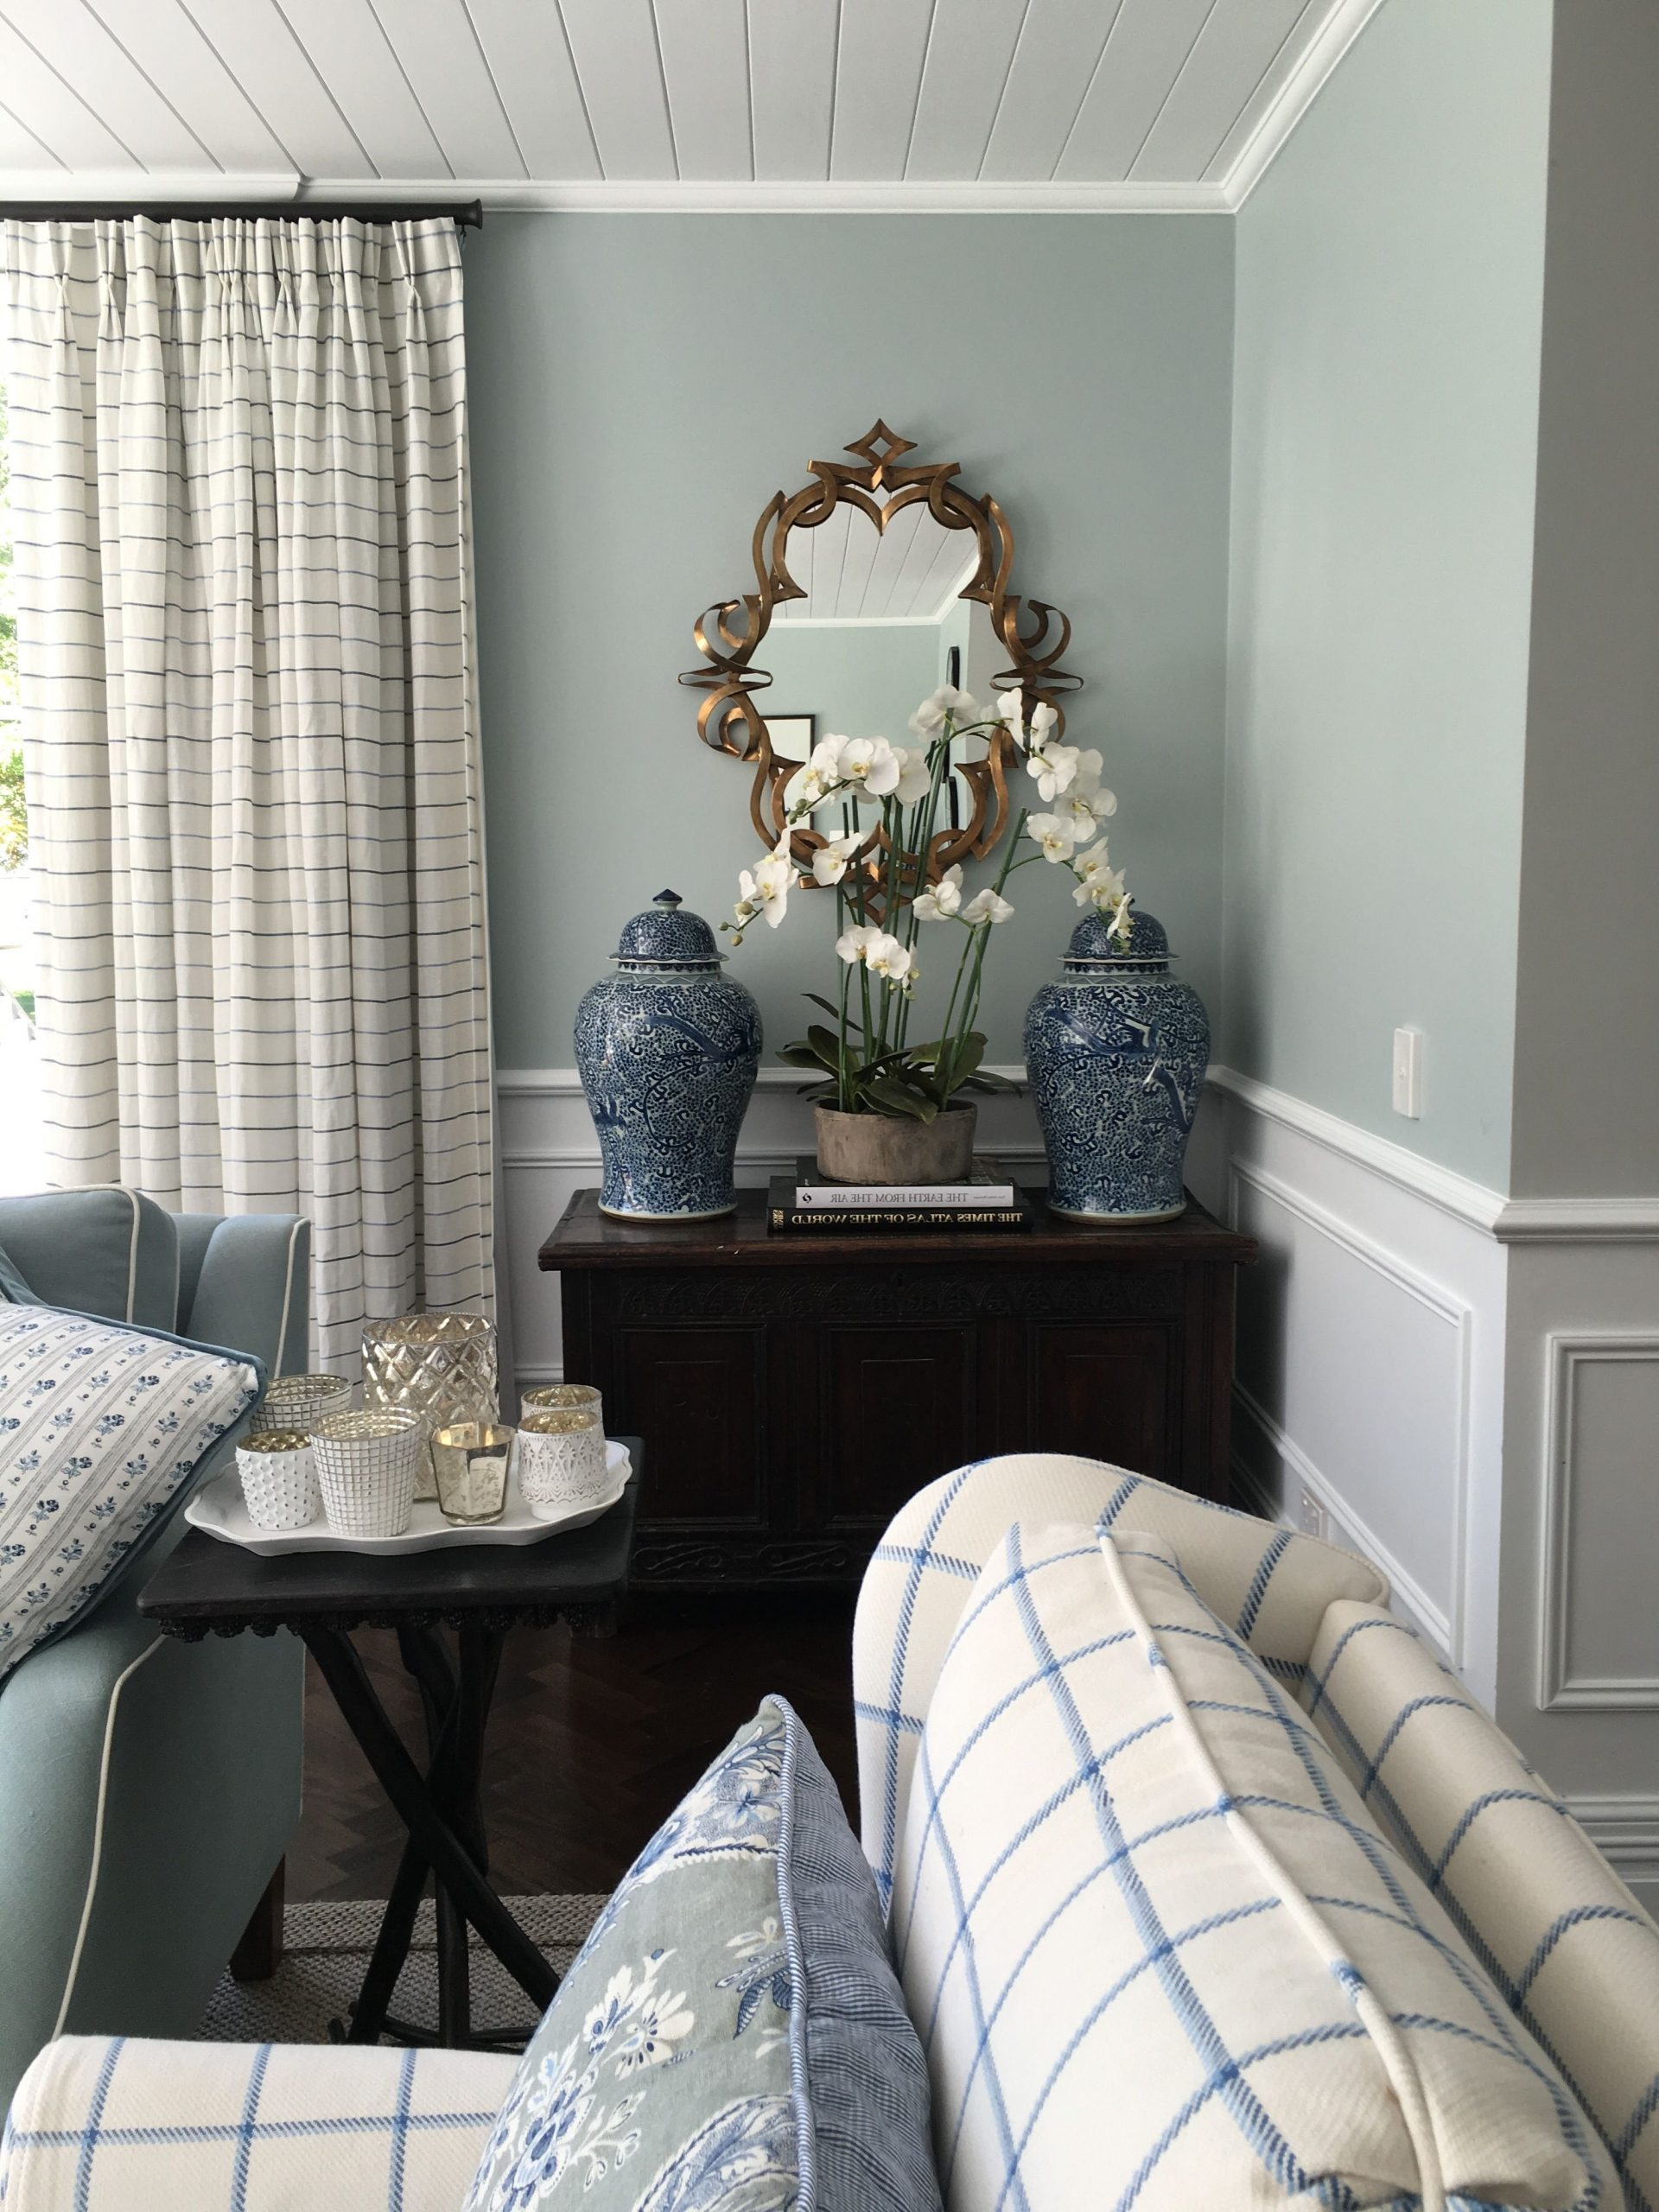 Pin On Decorating 30+ Living Room With Duck Egg Blue Ideas